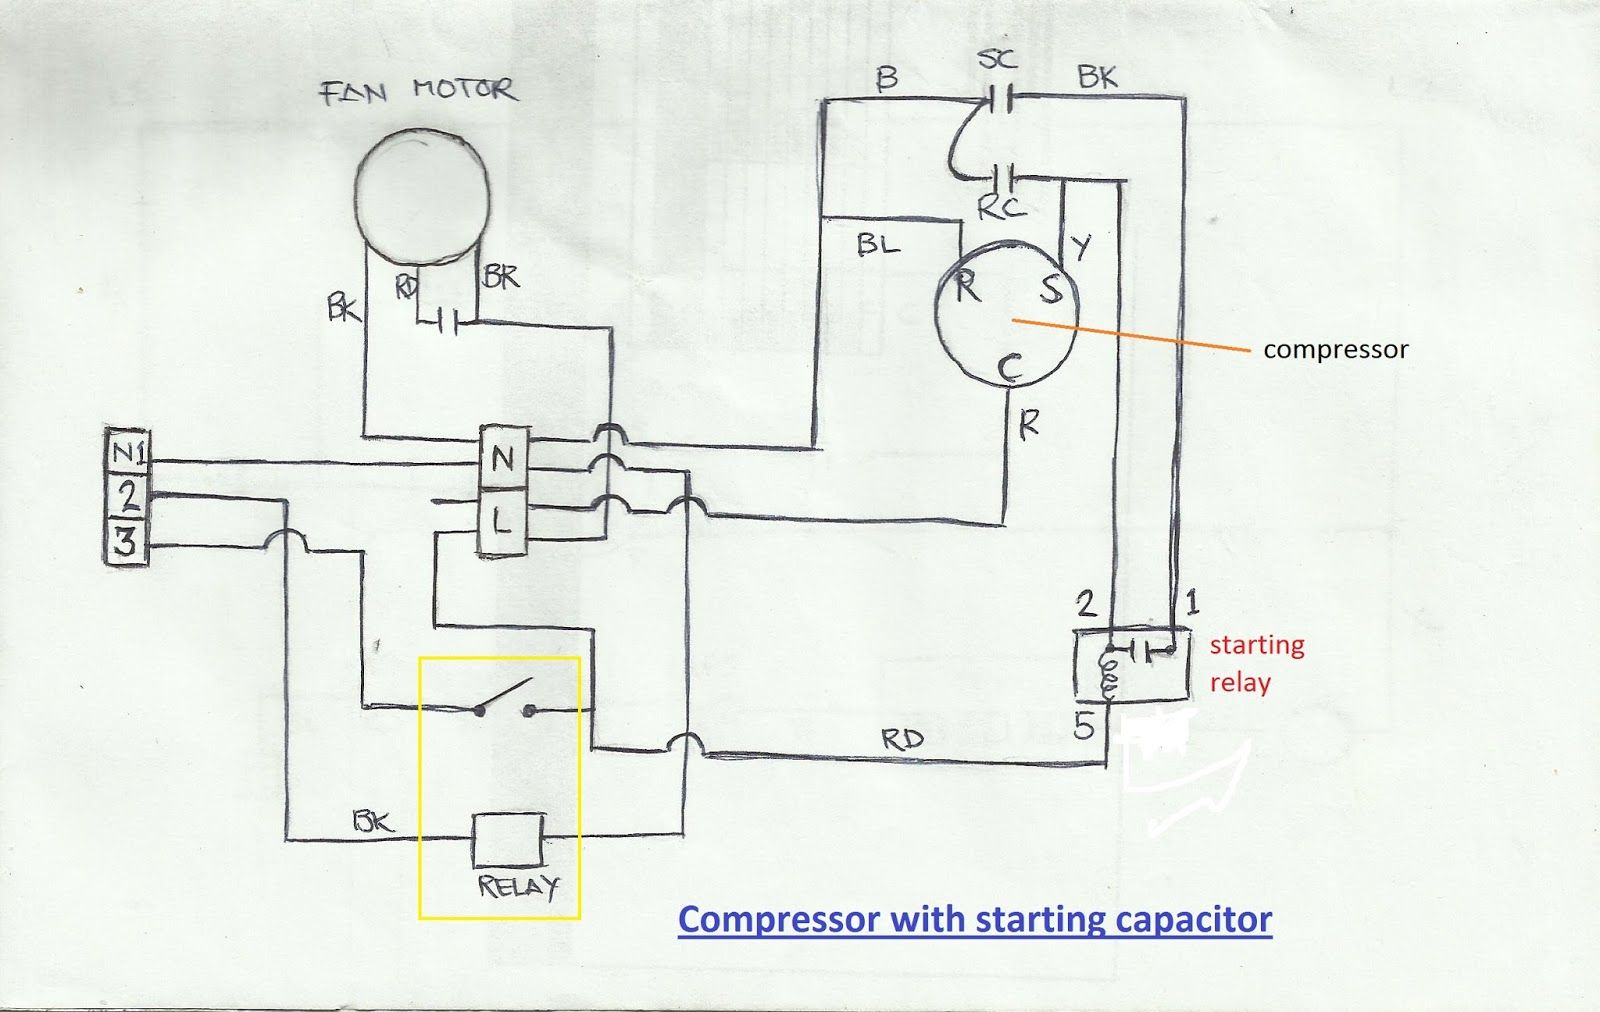 small resolution of refrigeration and air conditioning repair wiring diagram of at fridge compressor ac capacitor air conditioner